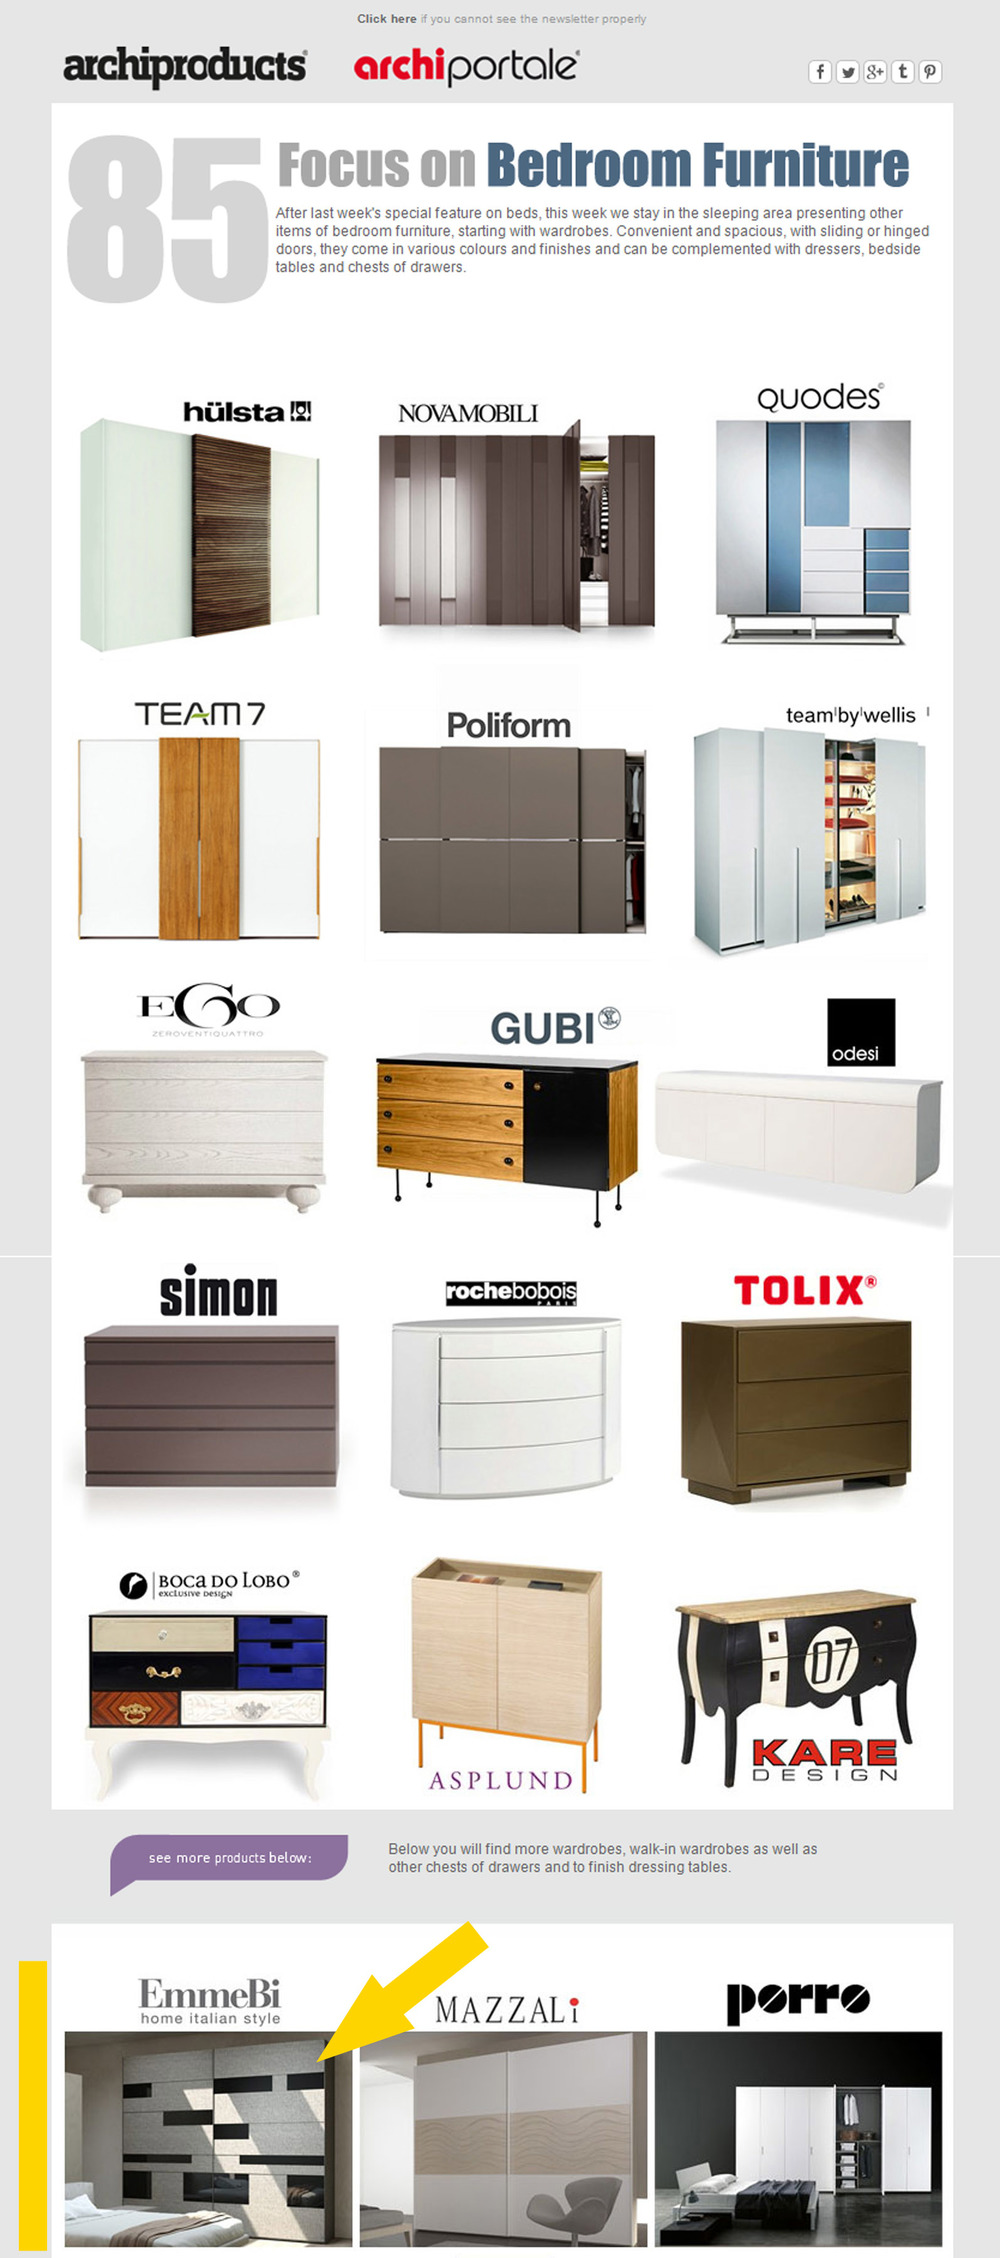 FocusOnBedroomFurniture_Newsletter Archiportale 27 Dicembre 2012.jpg